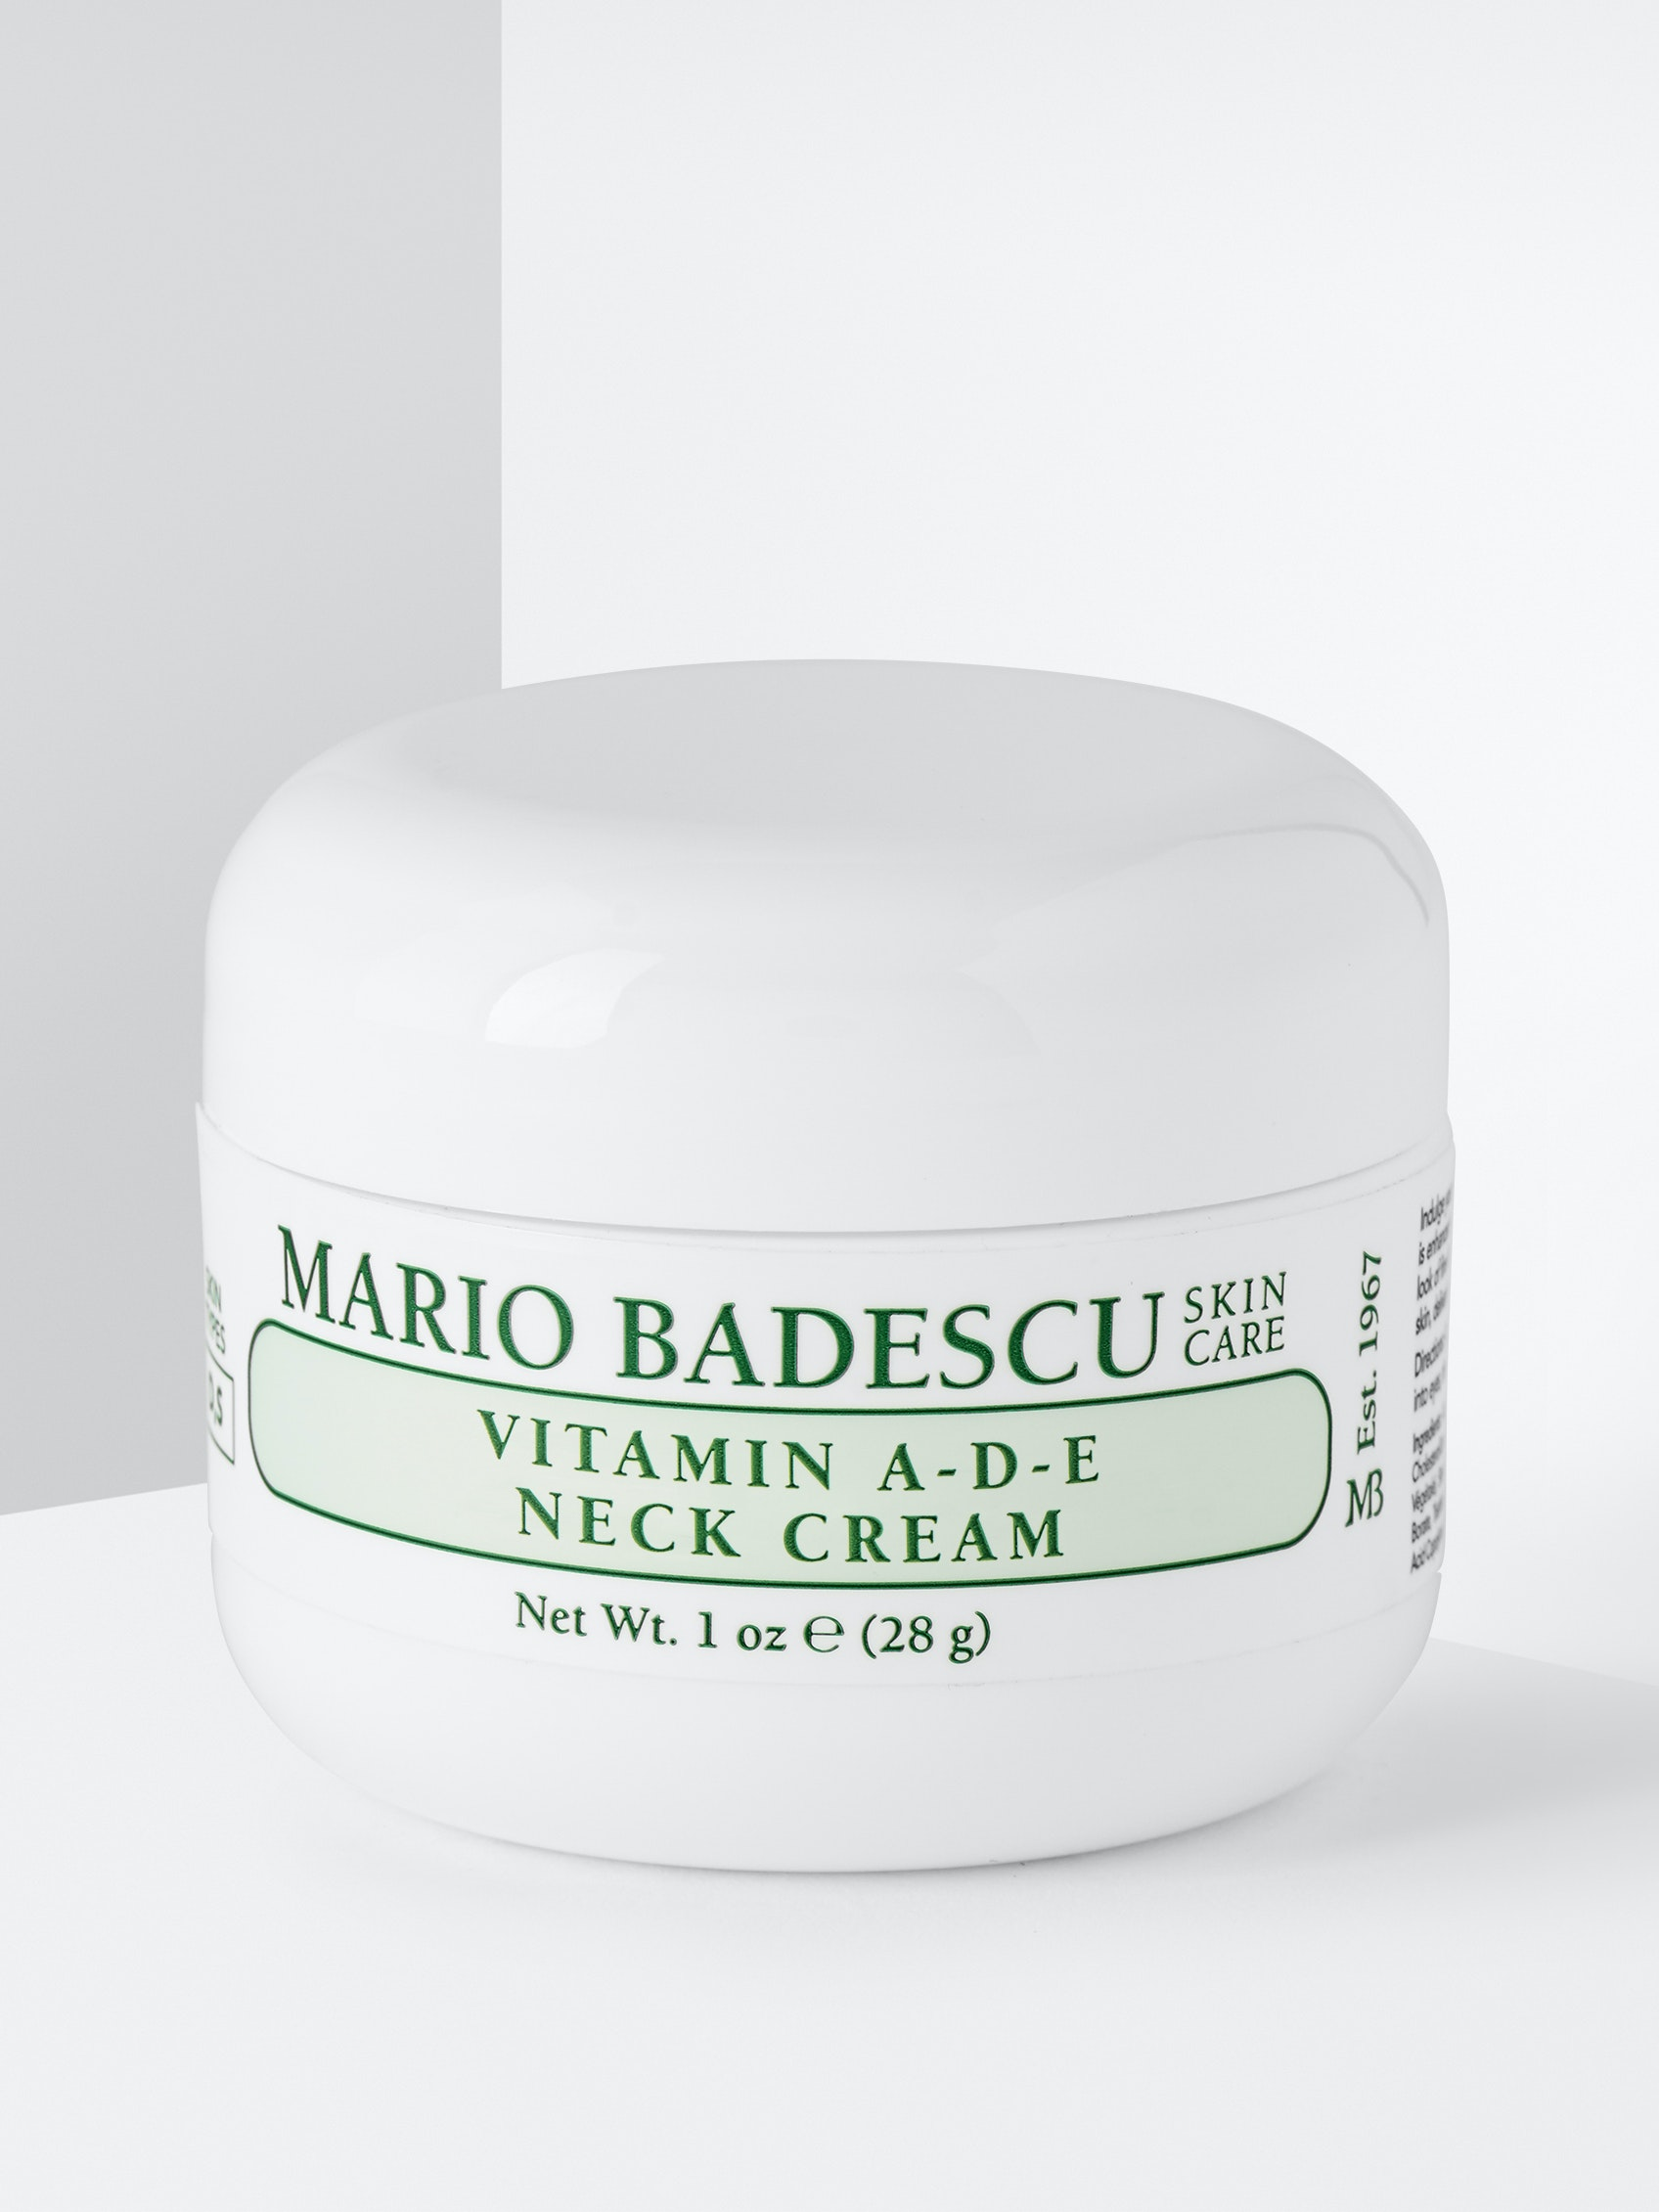 Mario Badescu Skin Care Vitamin A-D-E Neck Cream